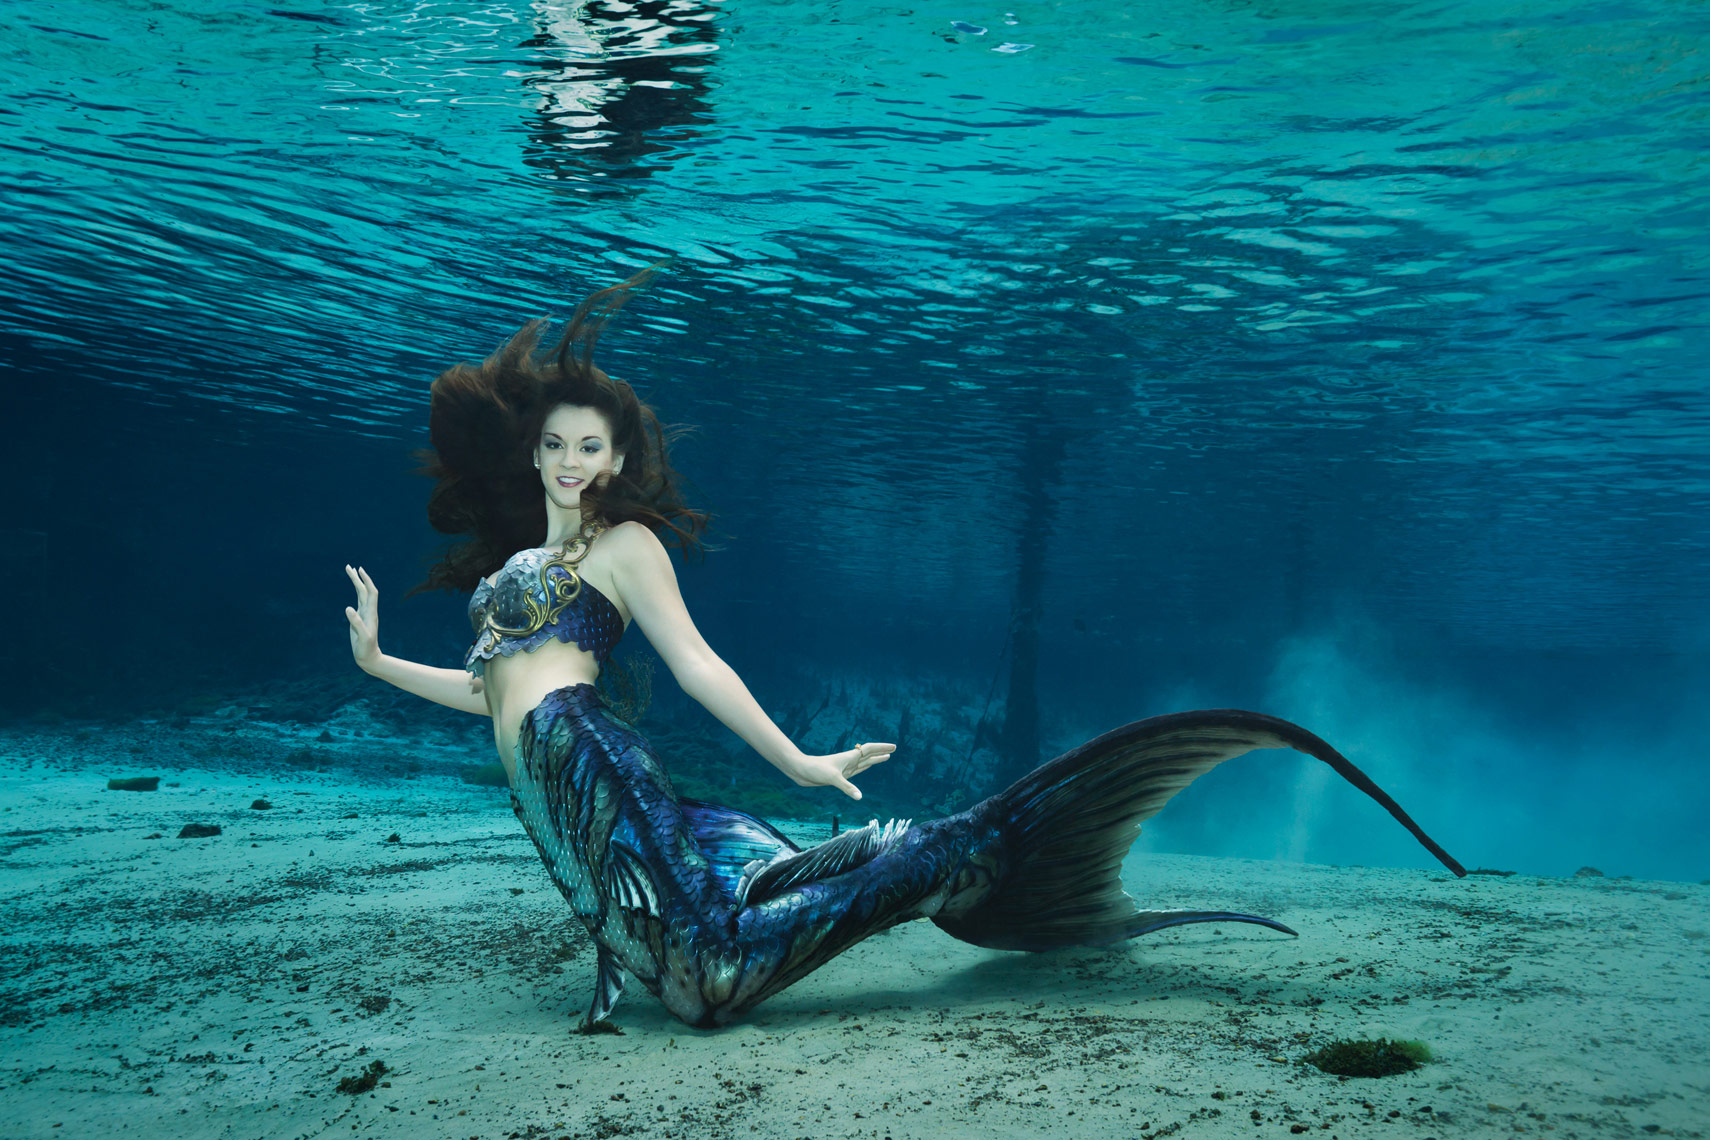 Mermaid-Taylor